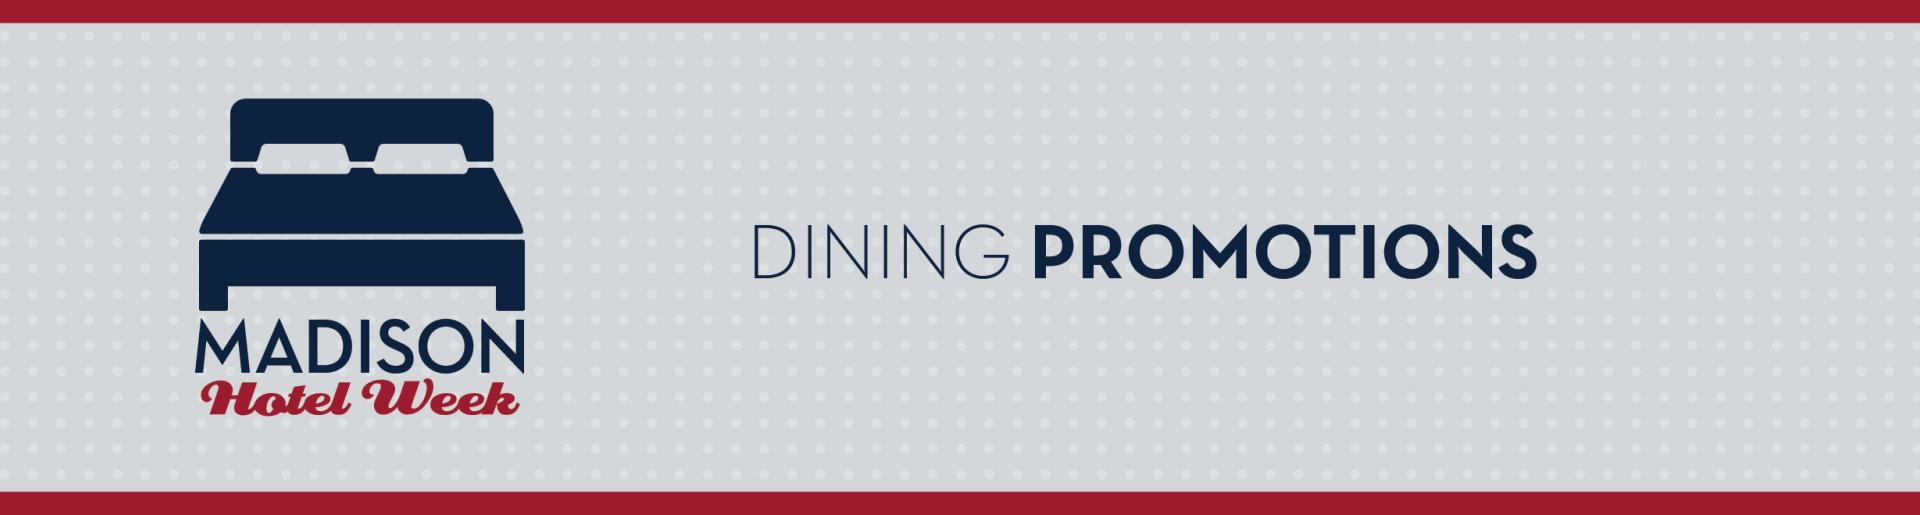 Madison Hotel Week: Dining Promotions